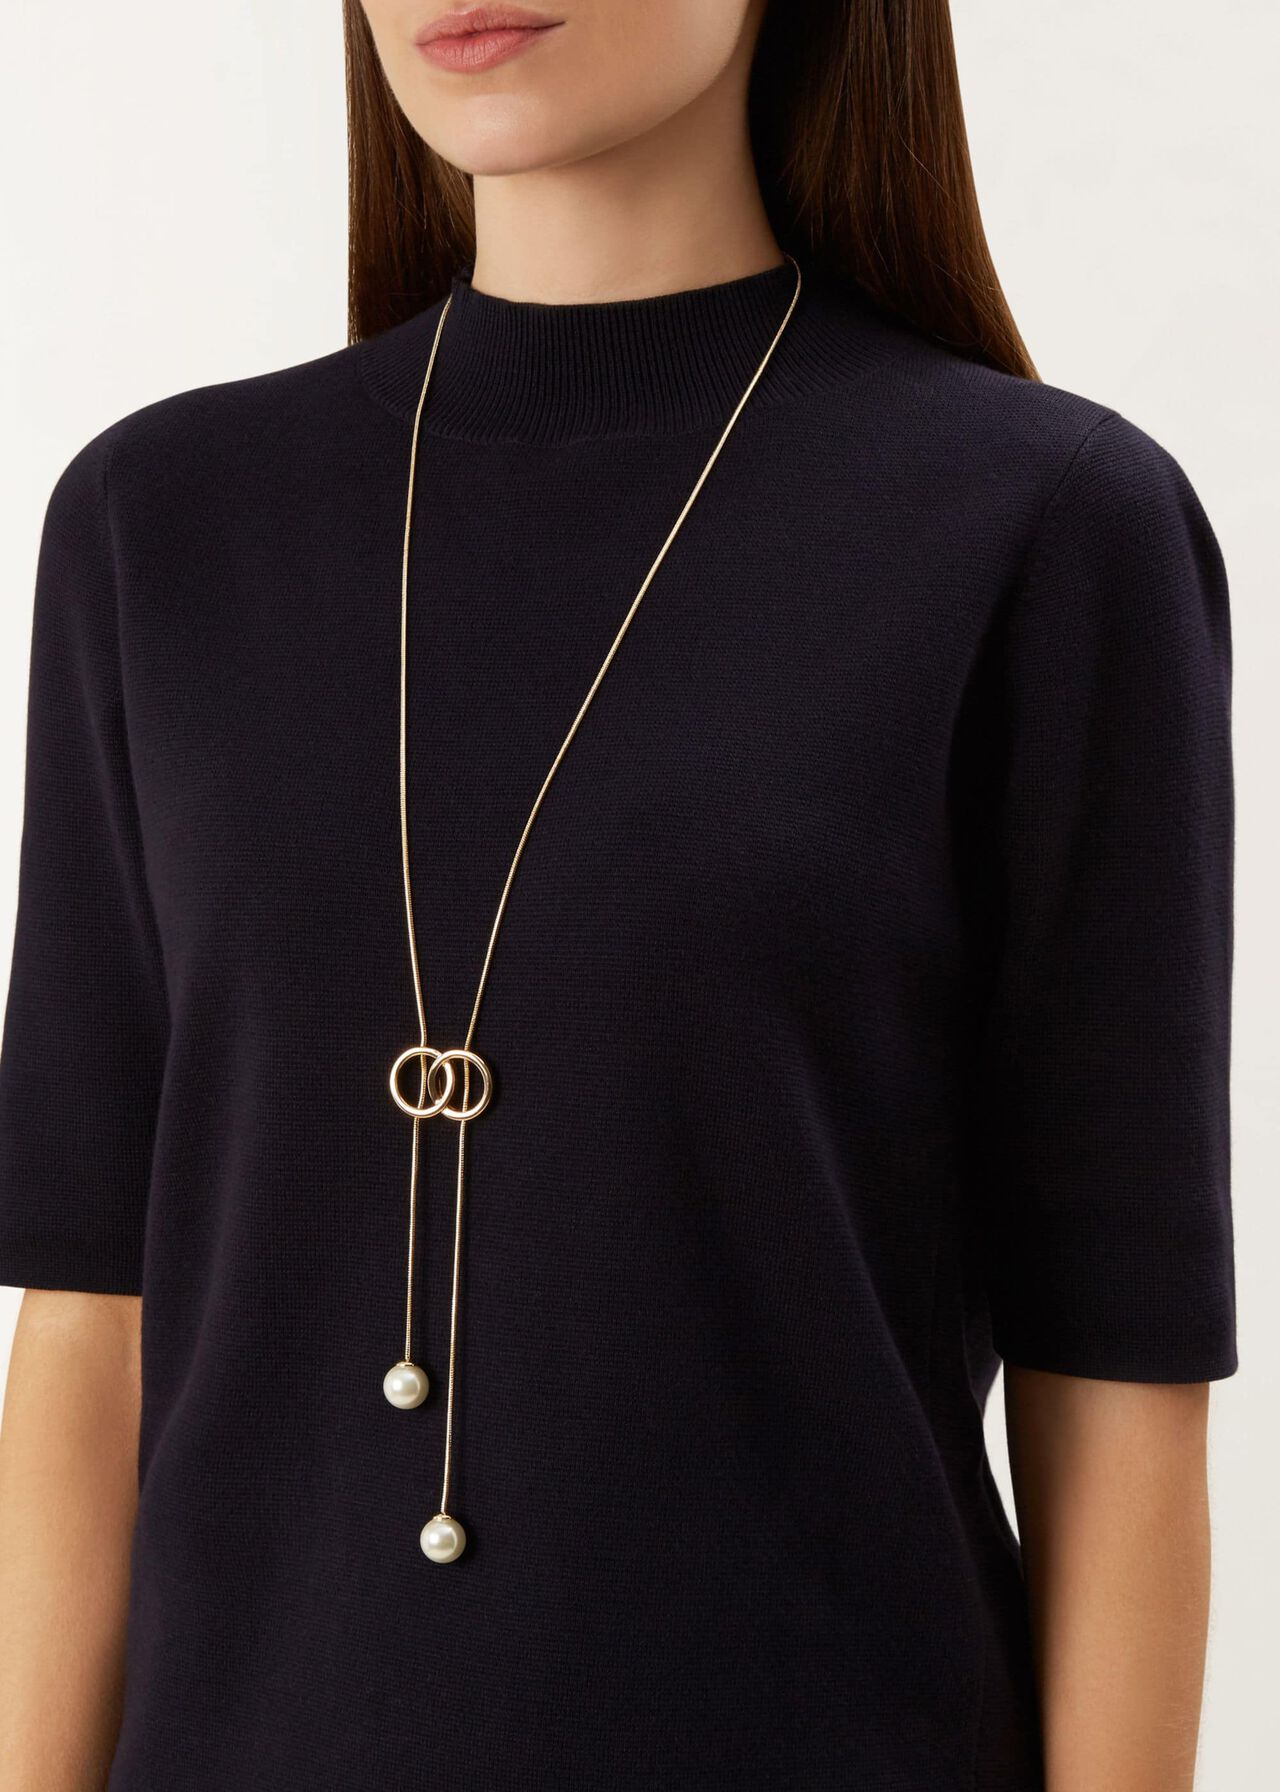 Robyn Necklace, Gold, hi-res